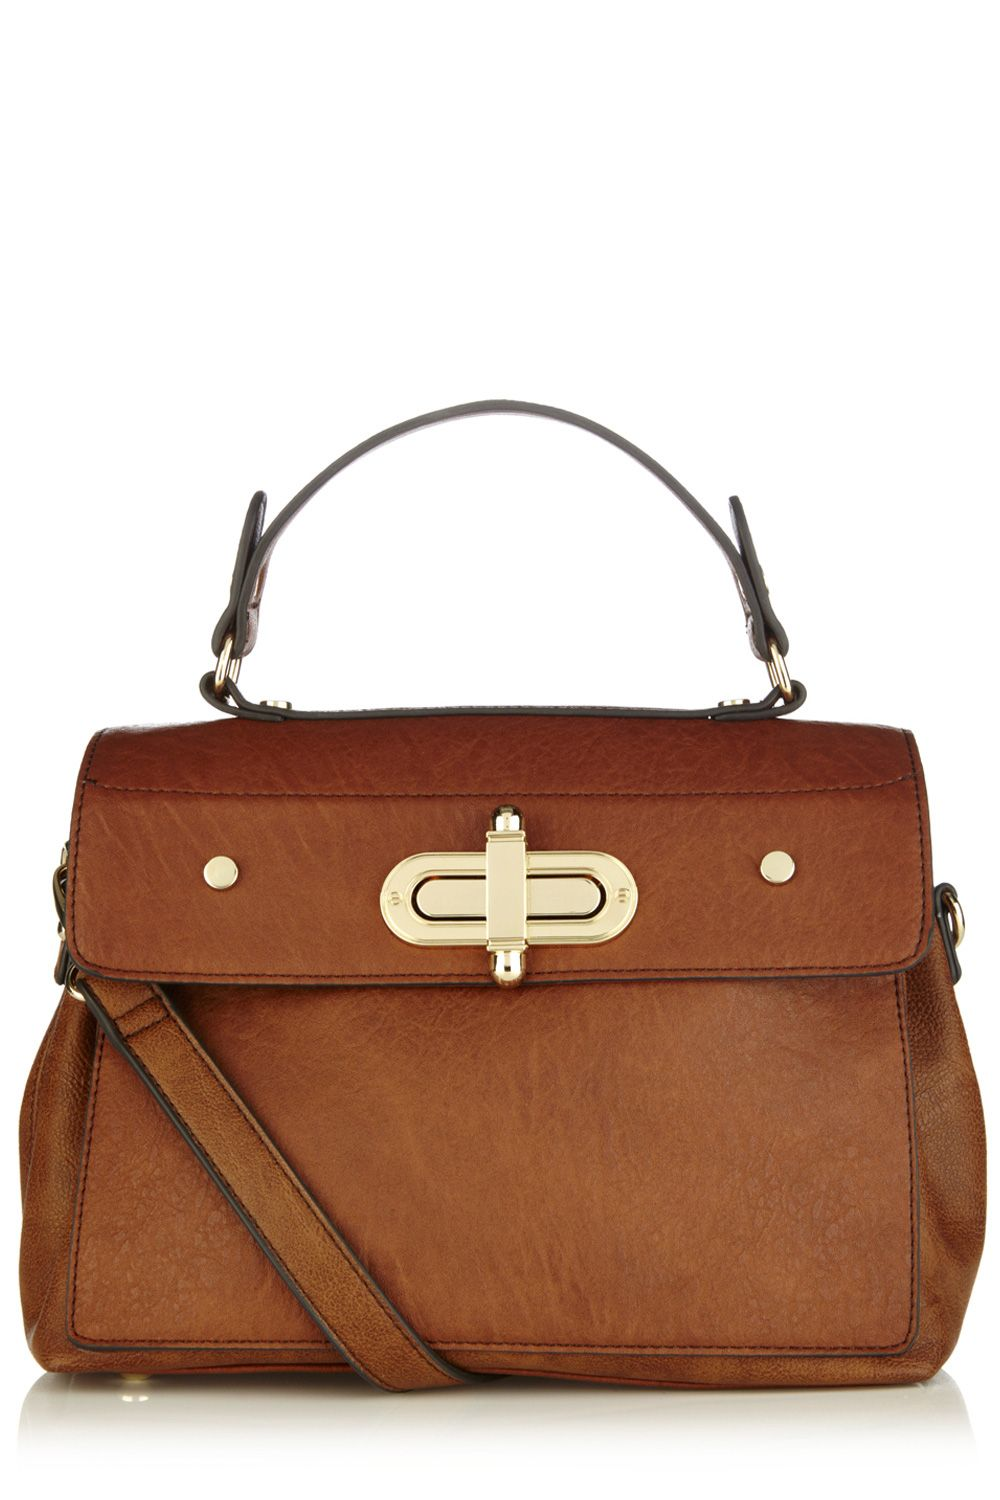 Sami top handle satchel bag